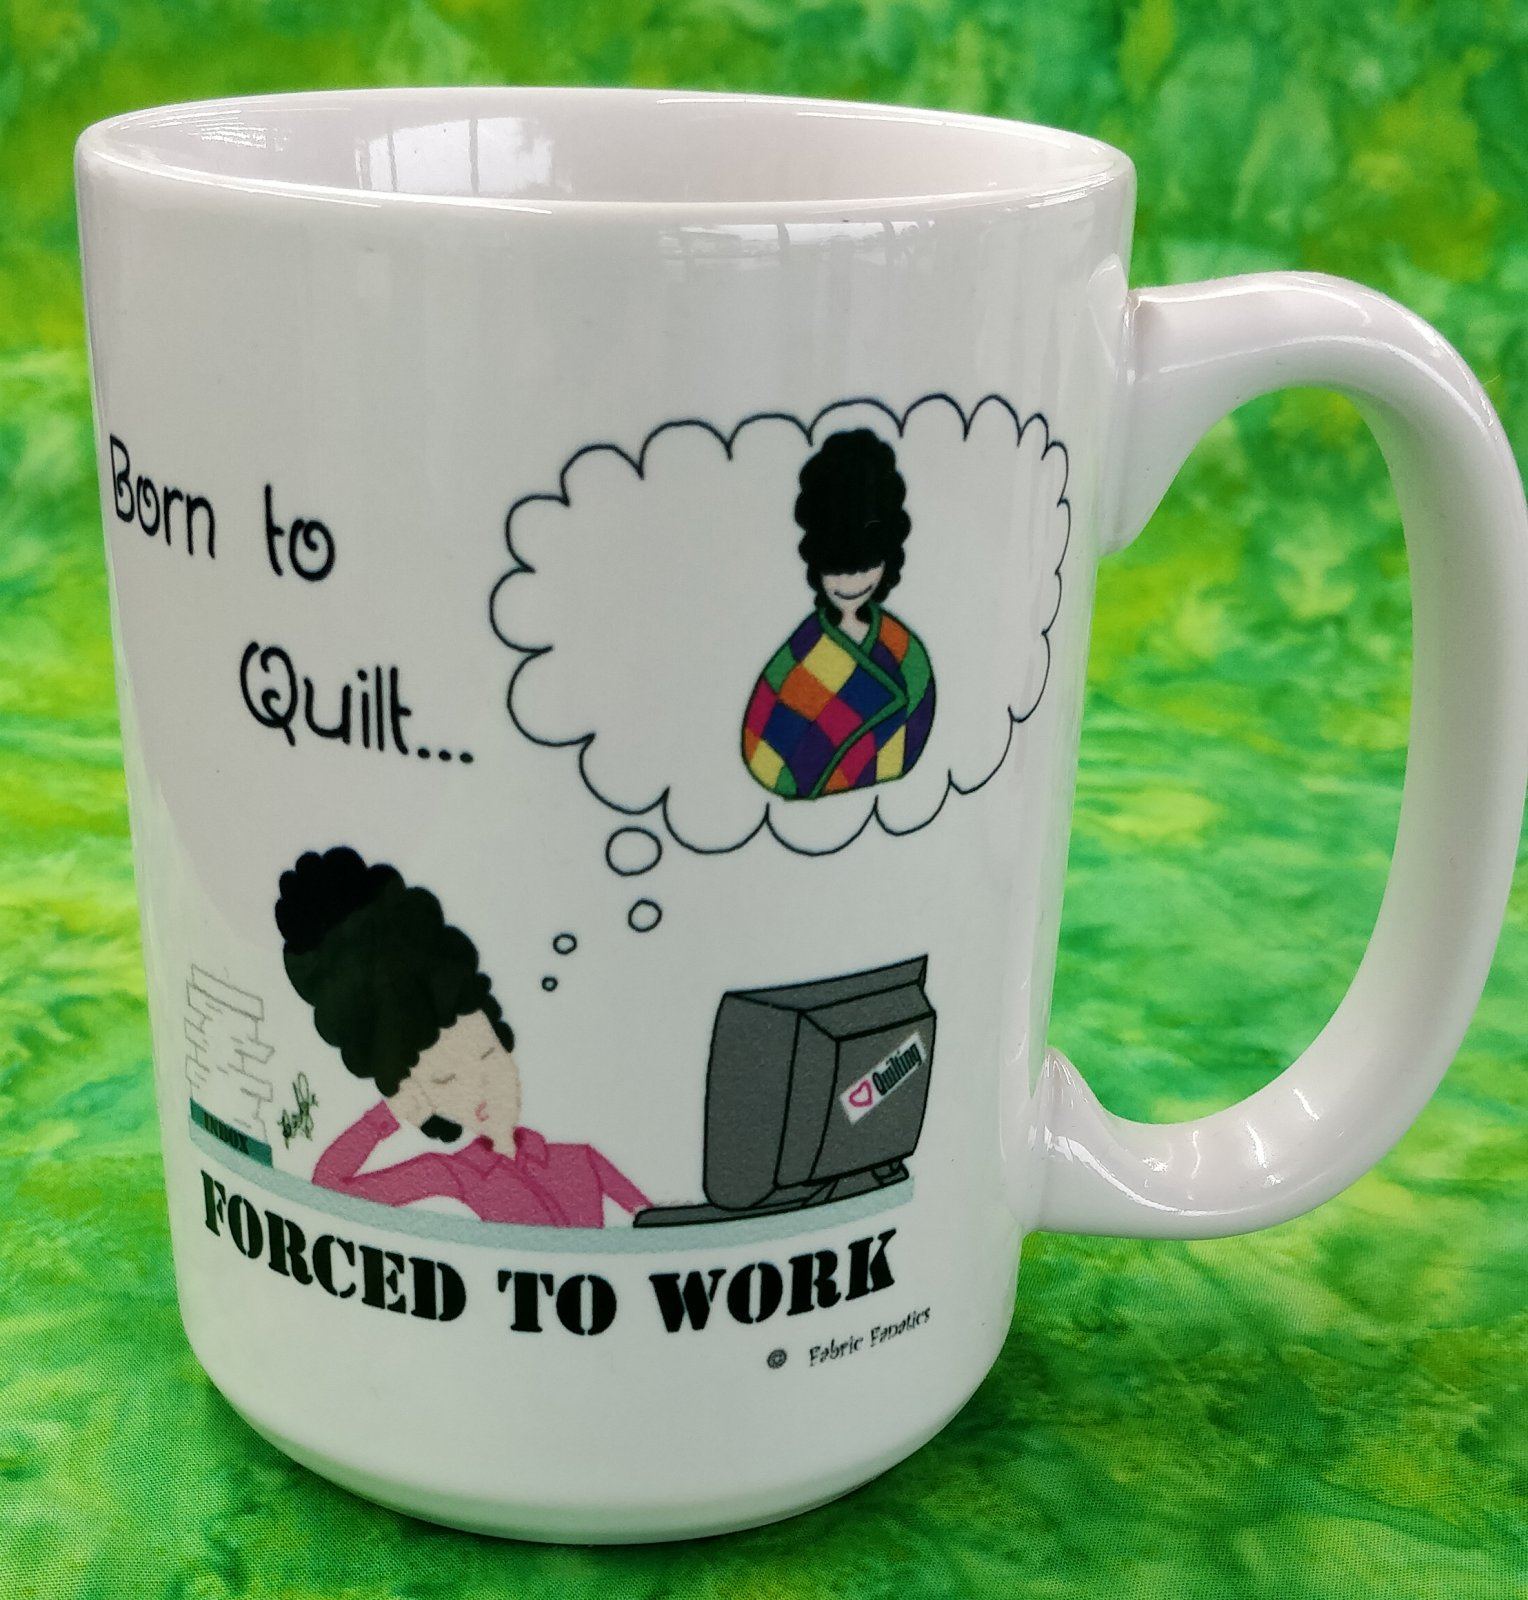 Mug - Born to Quilt Forced to Work - in store or curbside